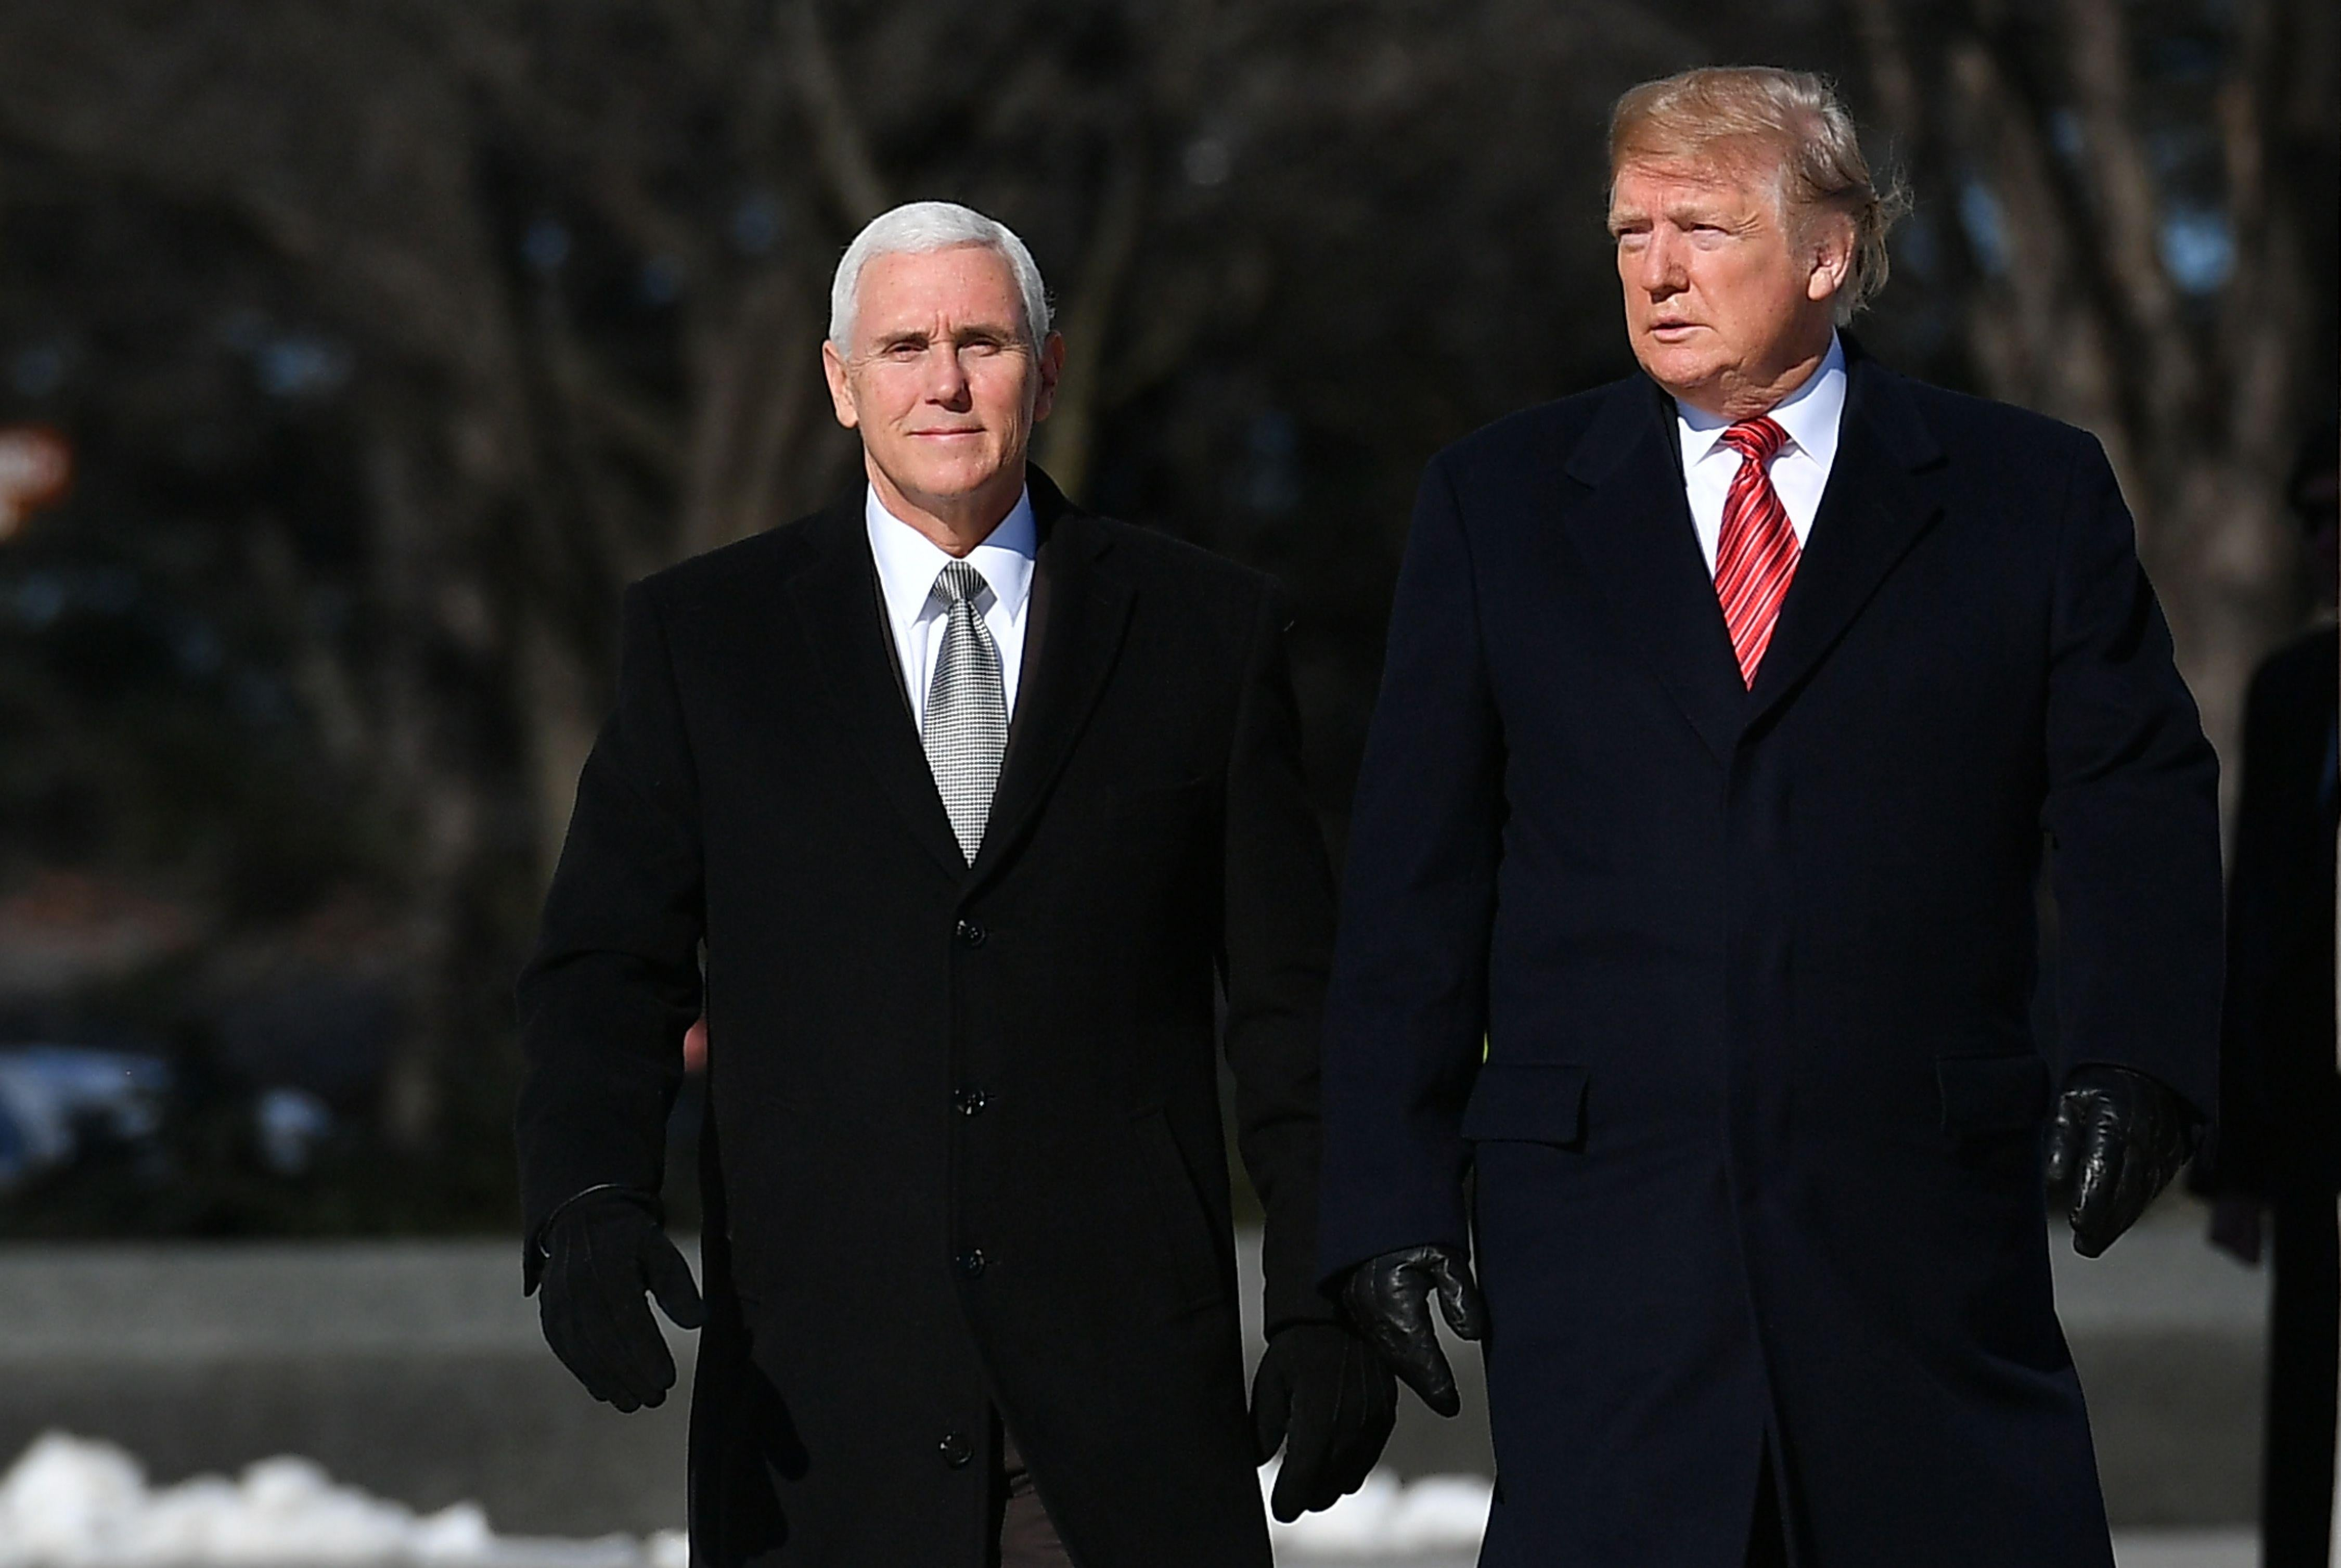 President Donald Trump and Vice President Mike Pence in winter coats and gloves.